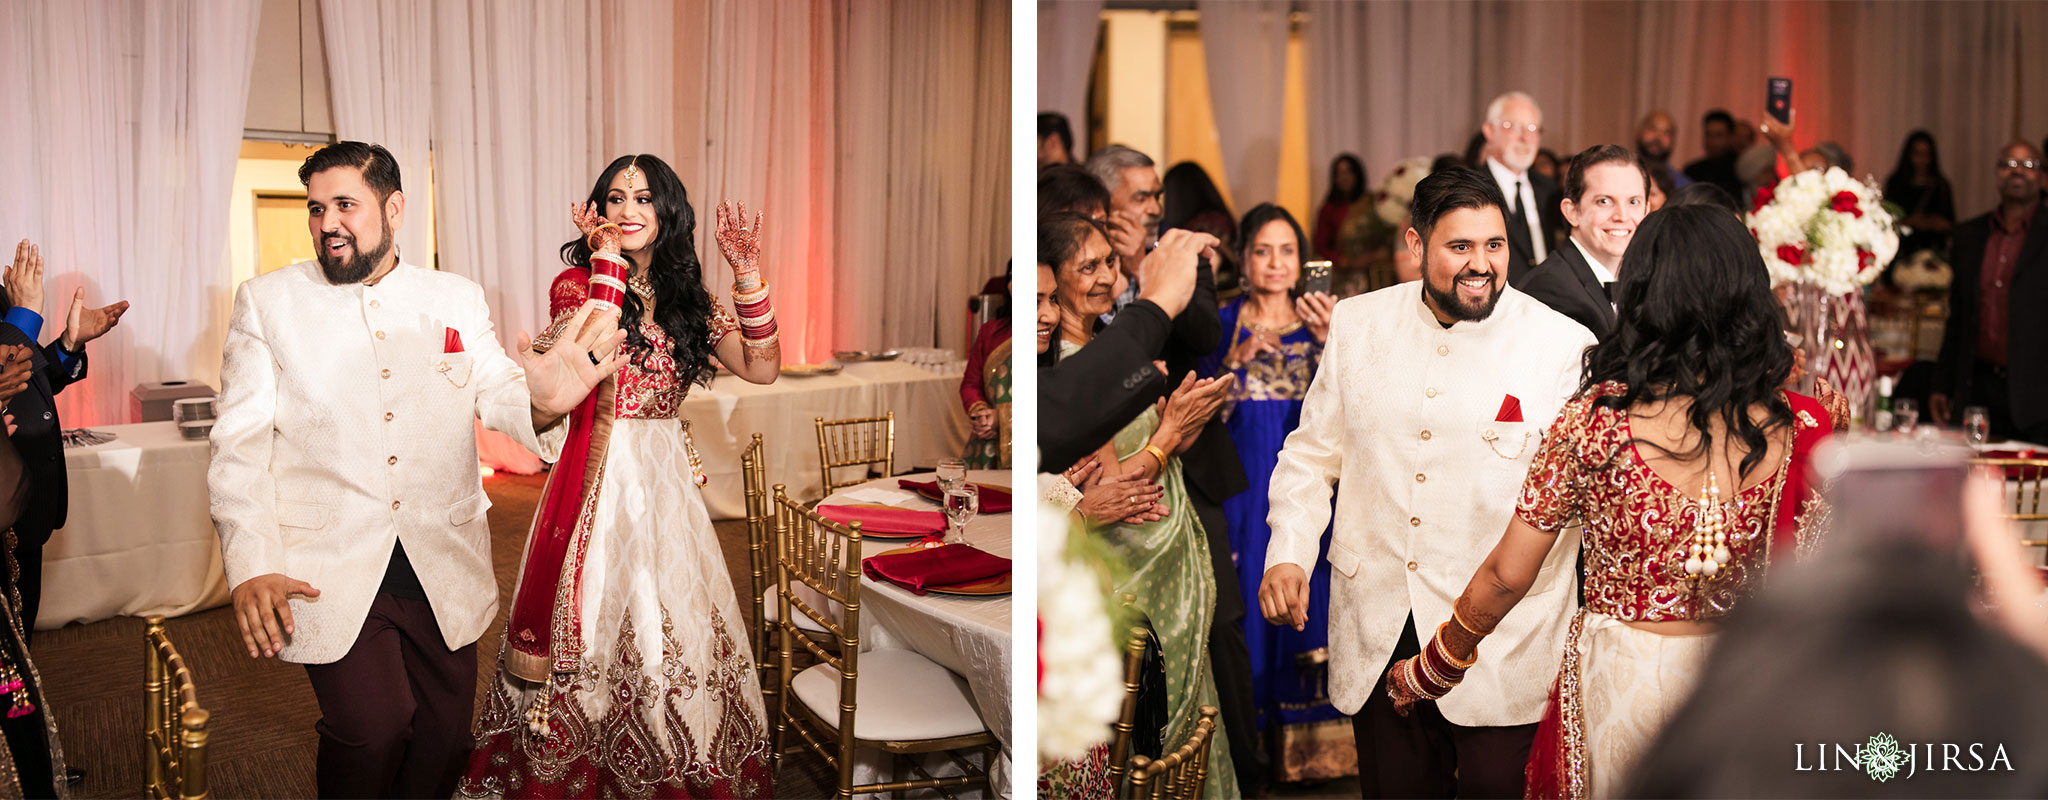 30 Diamond Bar Center Inland Empire Indian Wedding Photography